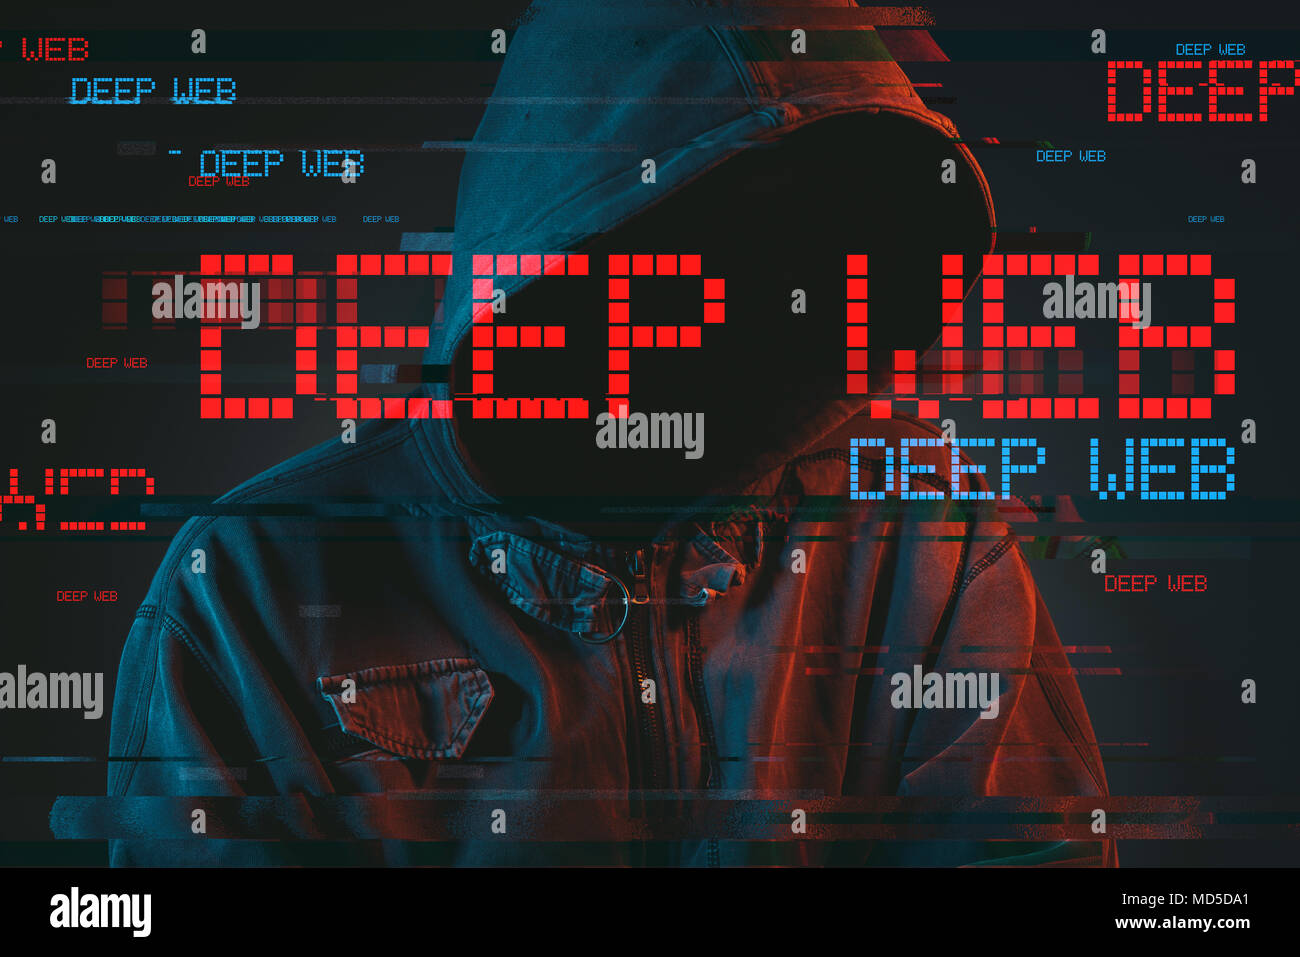 Deep web hacking concept with faceless hooded male person, low key red and blue lit image and digital glitch effect - Stock Image